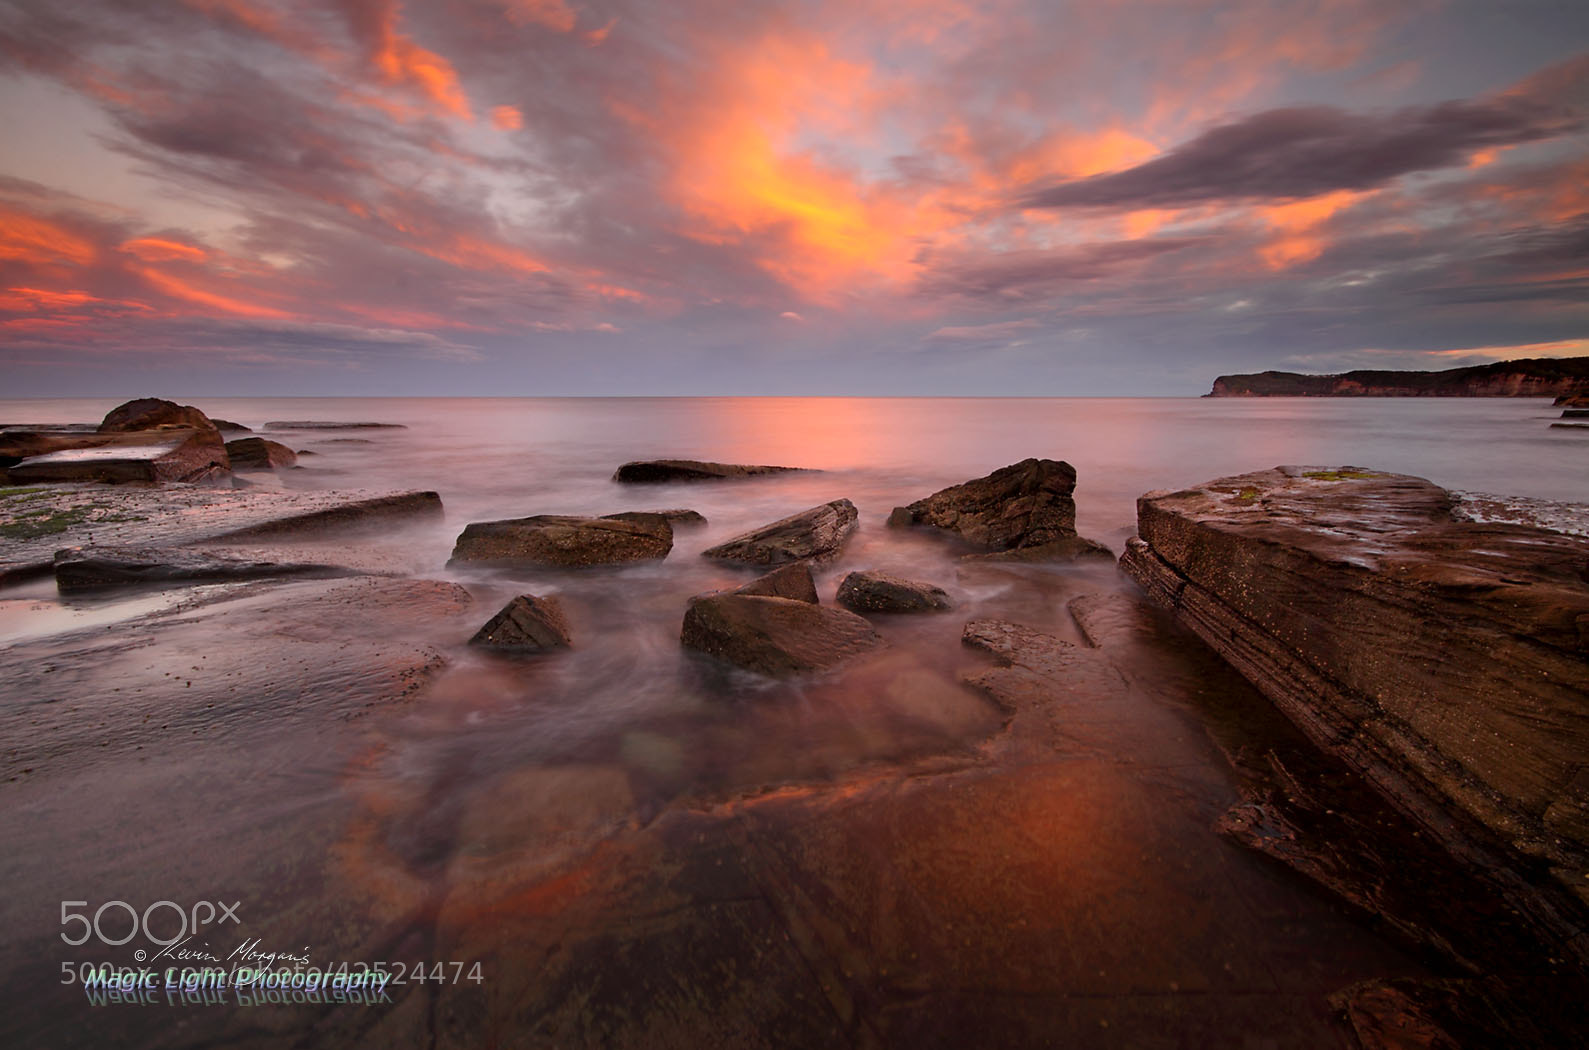 Photograph Terrigal Haven Rocks Sunset by Kevin Morgan on 500px